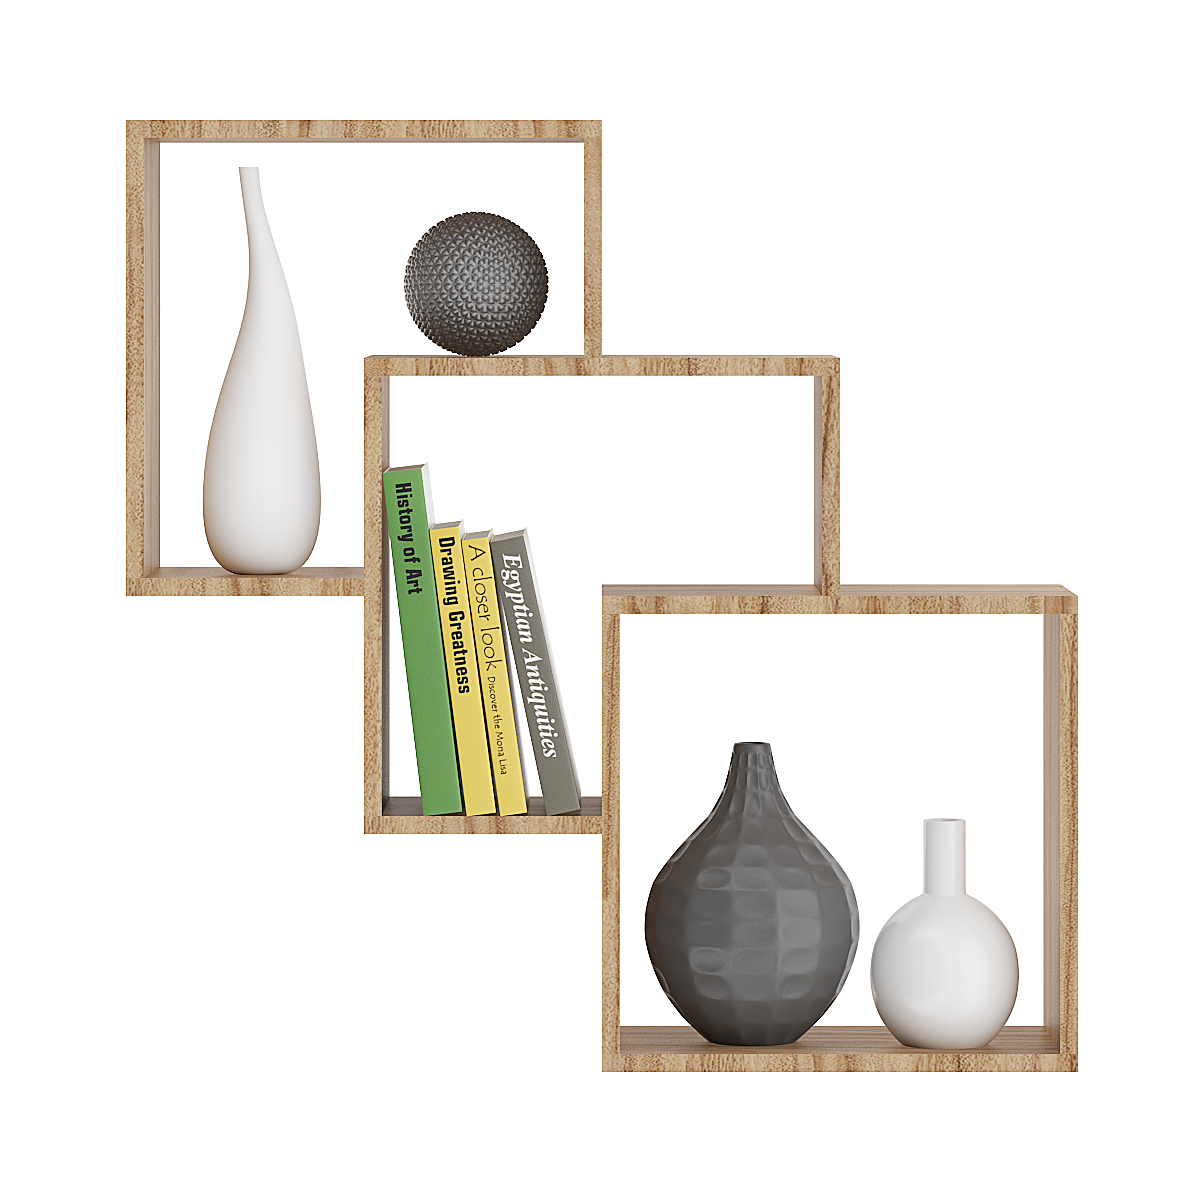 Wooden Wall Shelf With Books And Vases Cgaxis 3d Models Store